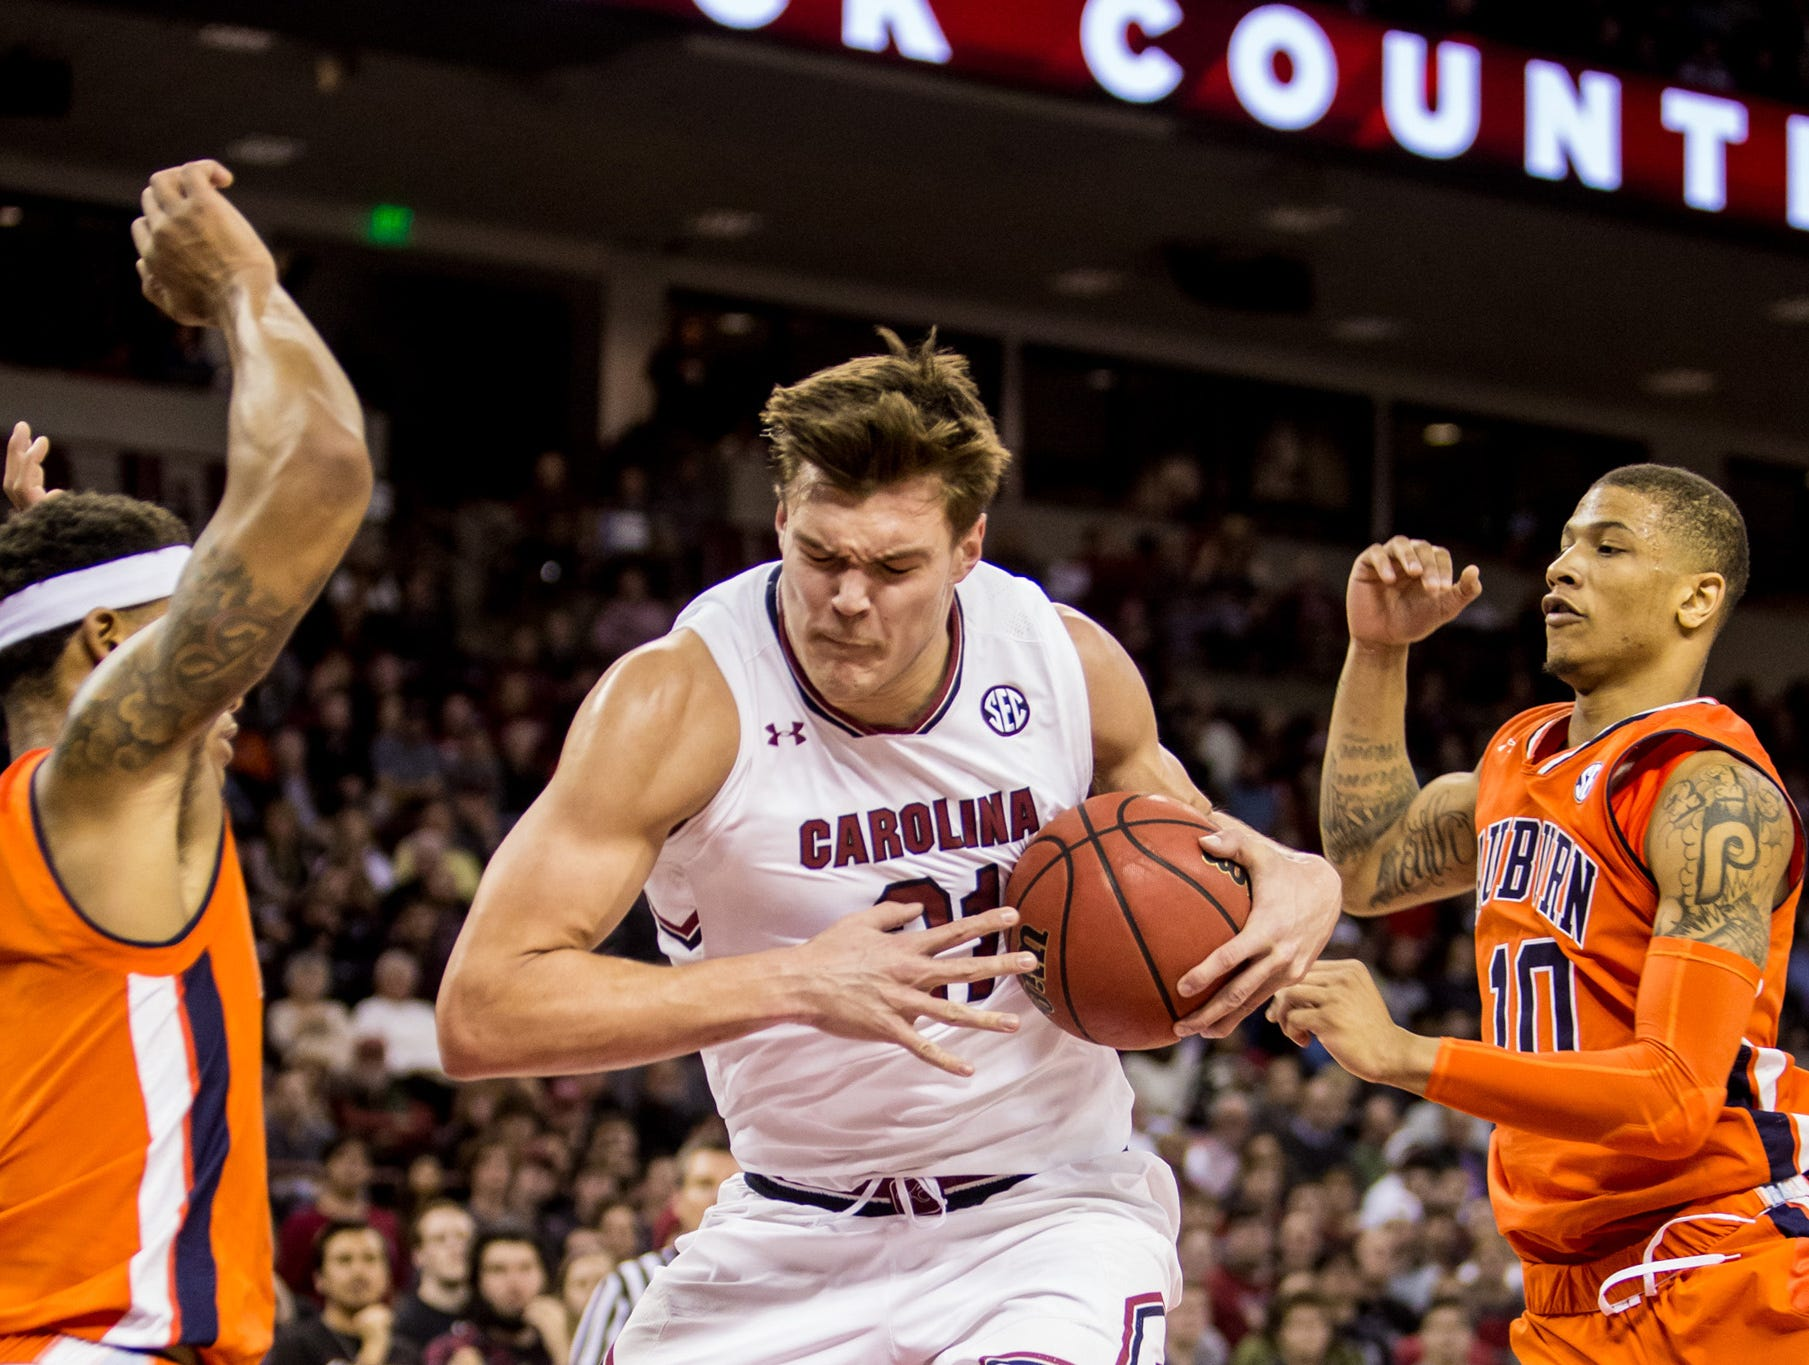 Jan 22, 2019; Columbia, SC, USA; South Carolina Gamecocks forward Maik Kotsar (21) grabs a rebound against the Auburn Tigers in the second half at Colonial Life Arena. South Carolina won 80-77. Mandatory Credit: Jeff Blake-USA TODAY Sports